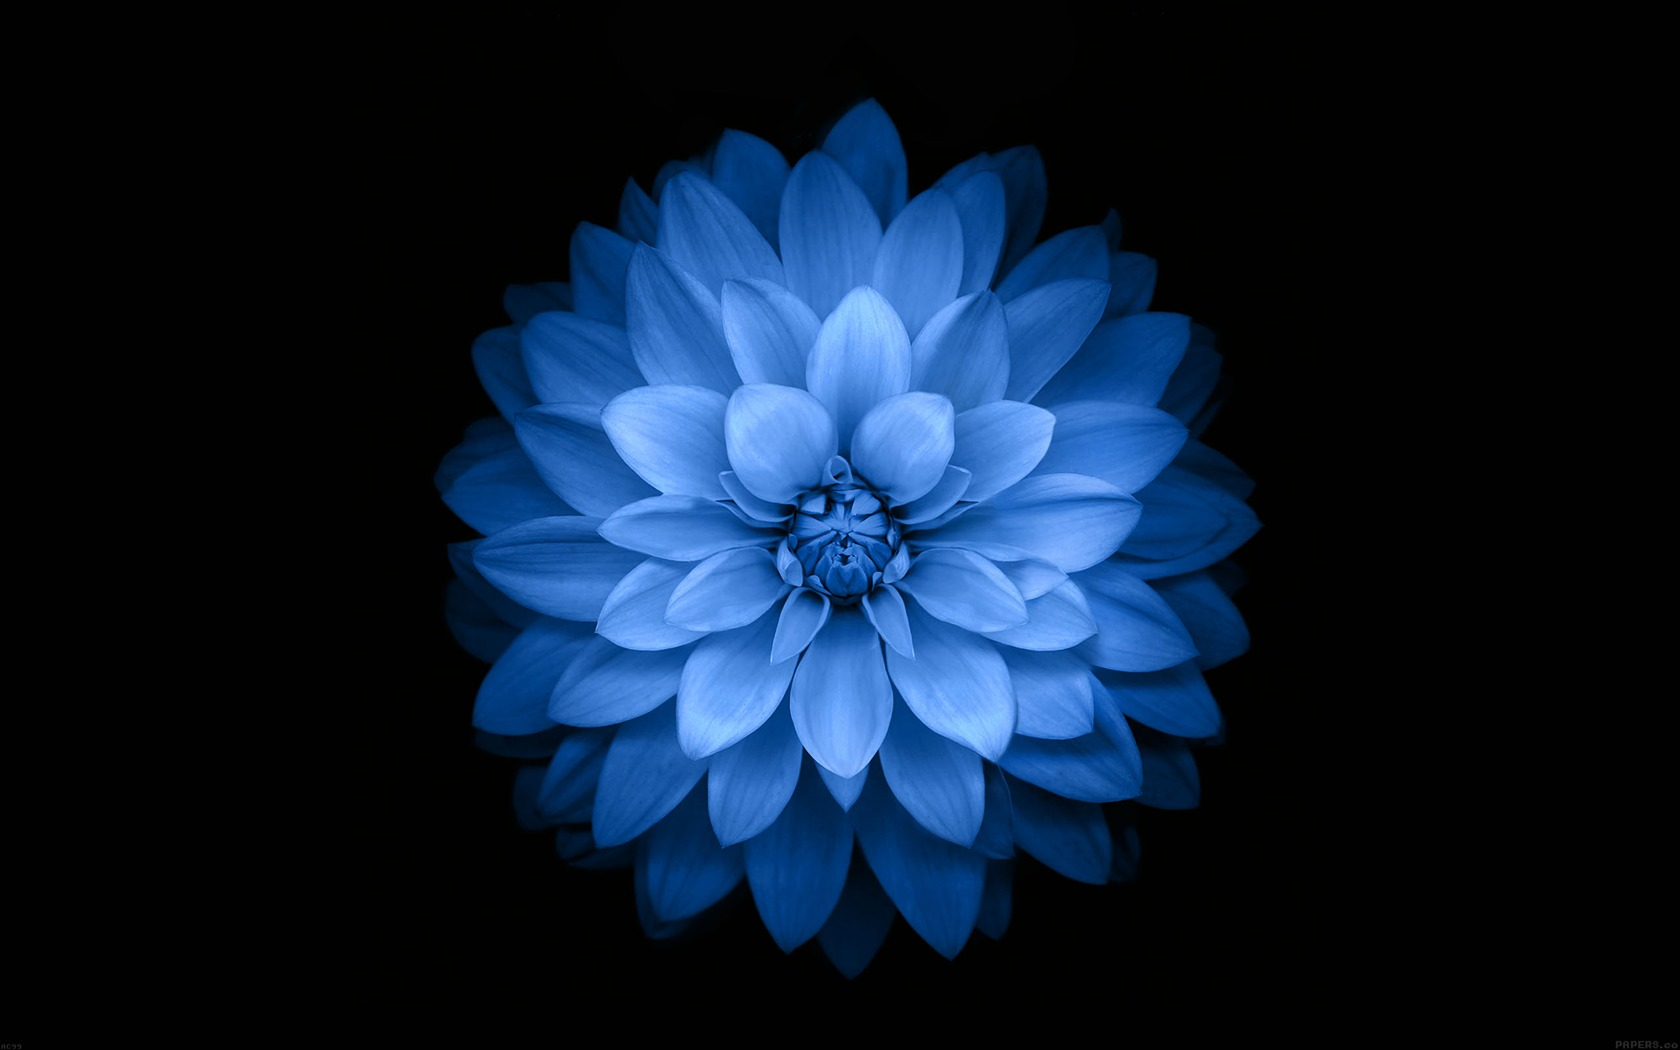 Download The New Ios 8 Wallpapers: 青蓮の花-Apple IOS8 IPhone6 Plus HDの壁紙プレビュー